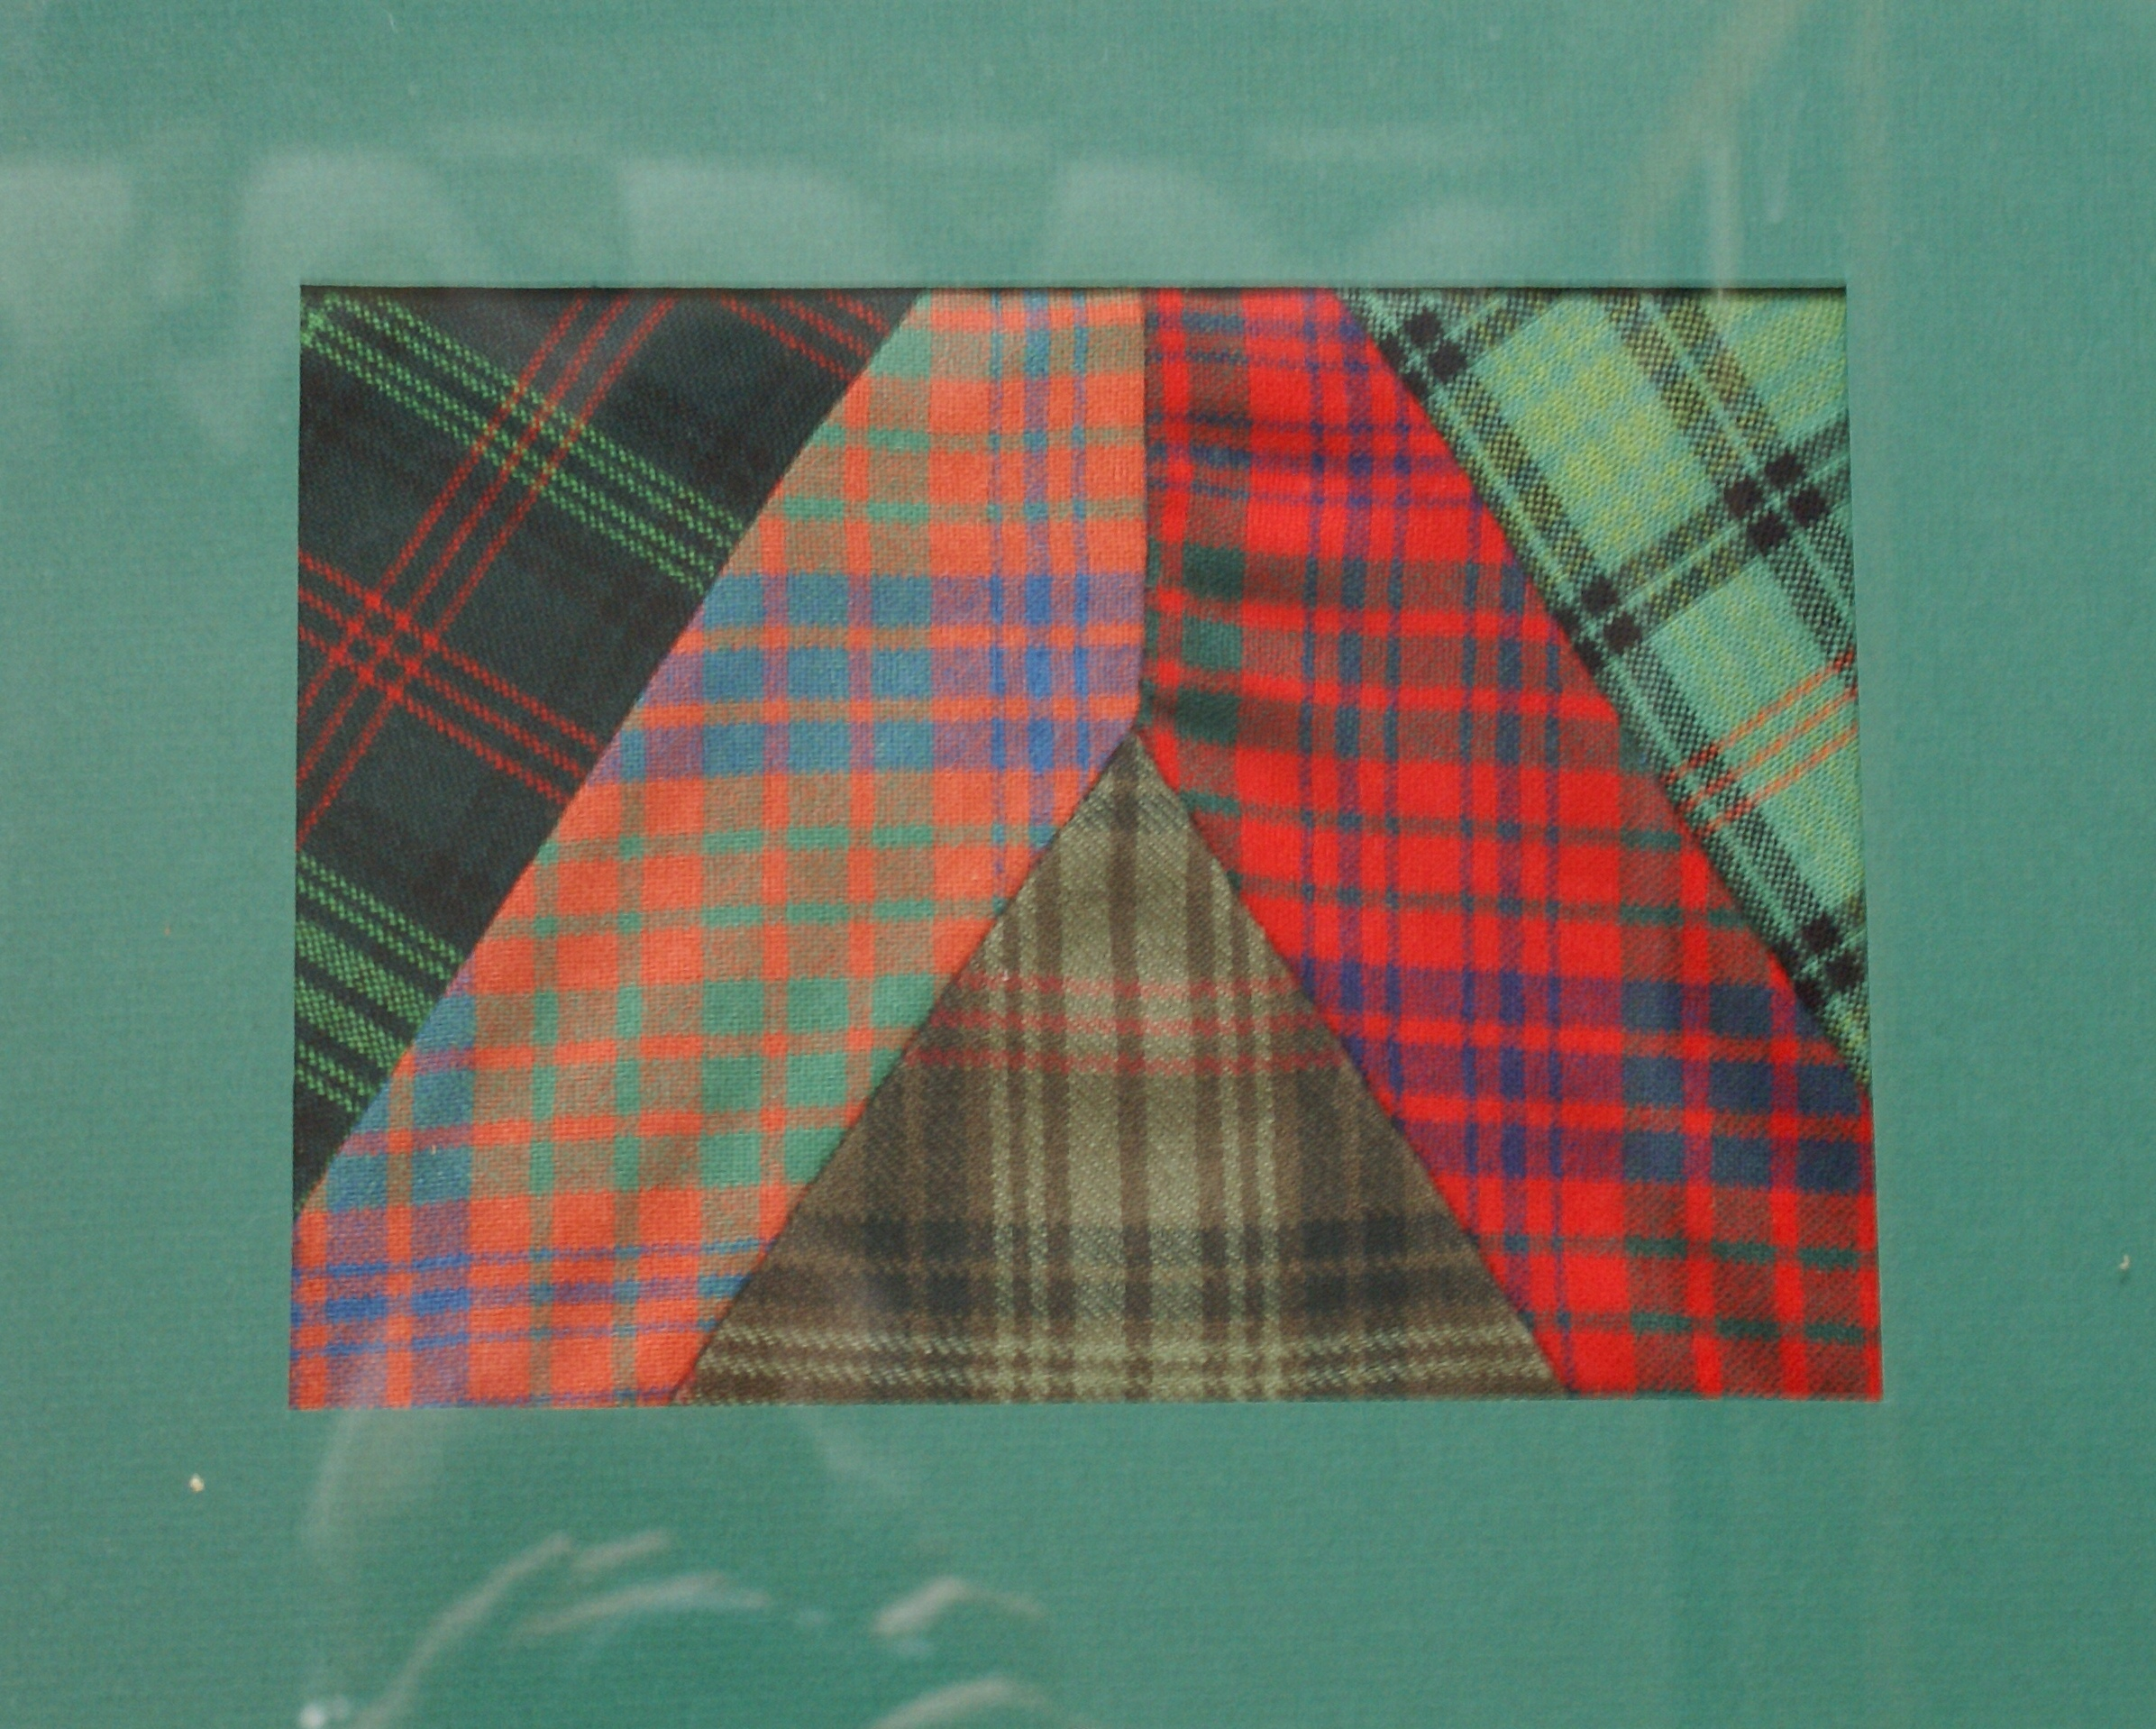 Ross Tartans in Space. From left to right: Ross hunting tartan (modern), Ross tartan (ancient), weathered Ross hunting tartan, Ross tartan (modern) and the Ross hunting tartan (ancient). Photo courtesy of George Ross, Clan Ross (Netherlands).